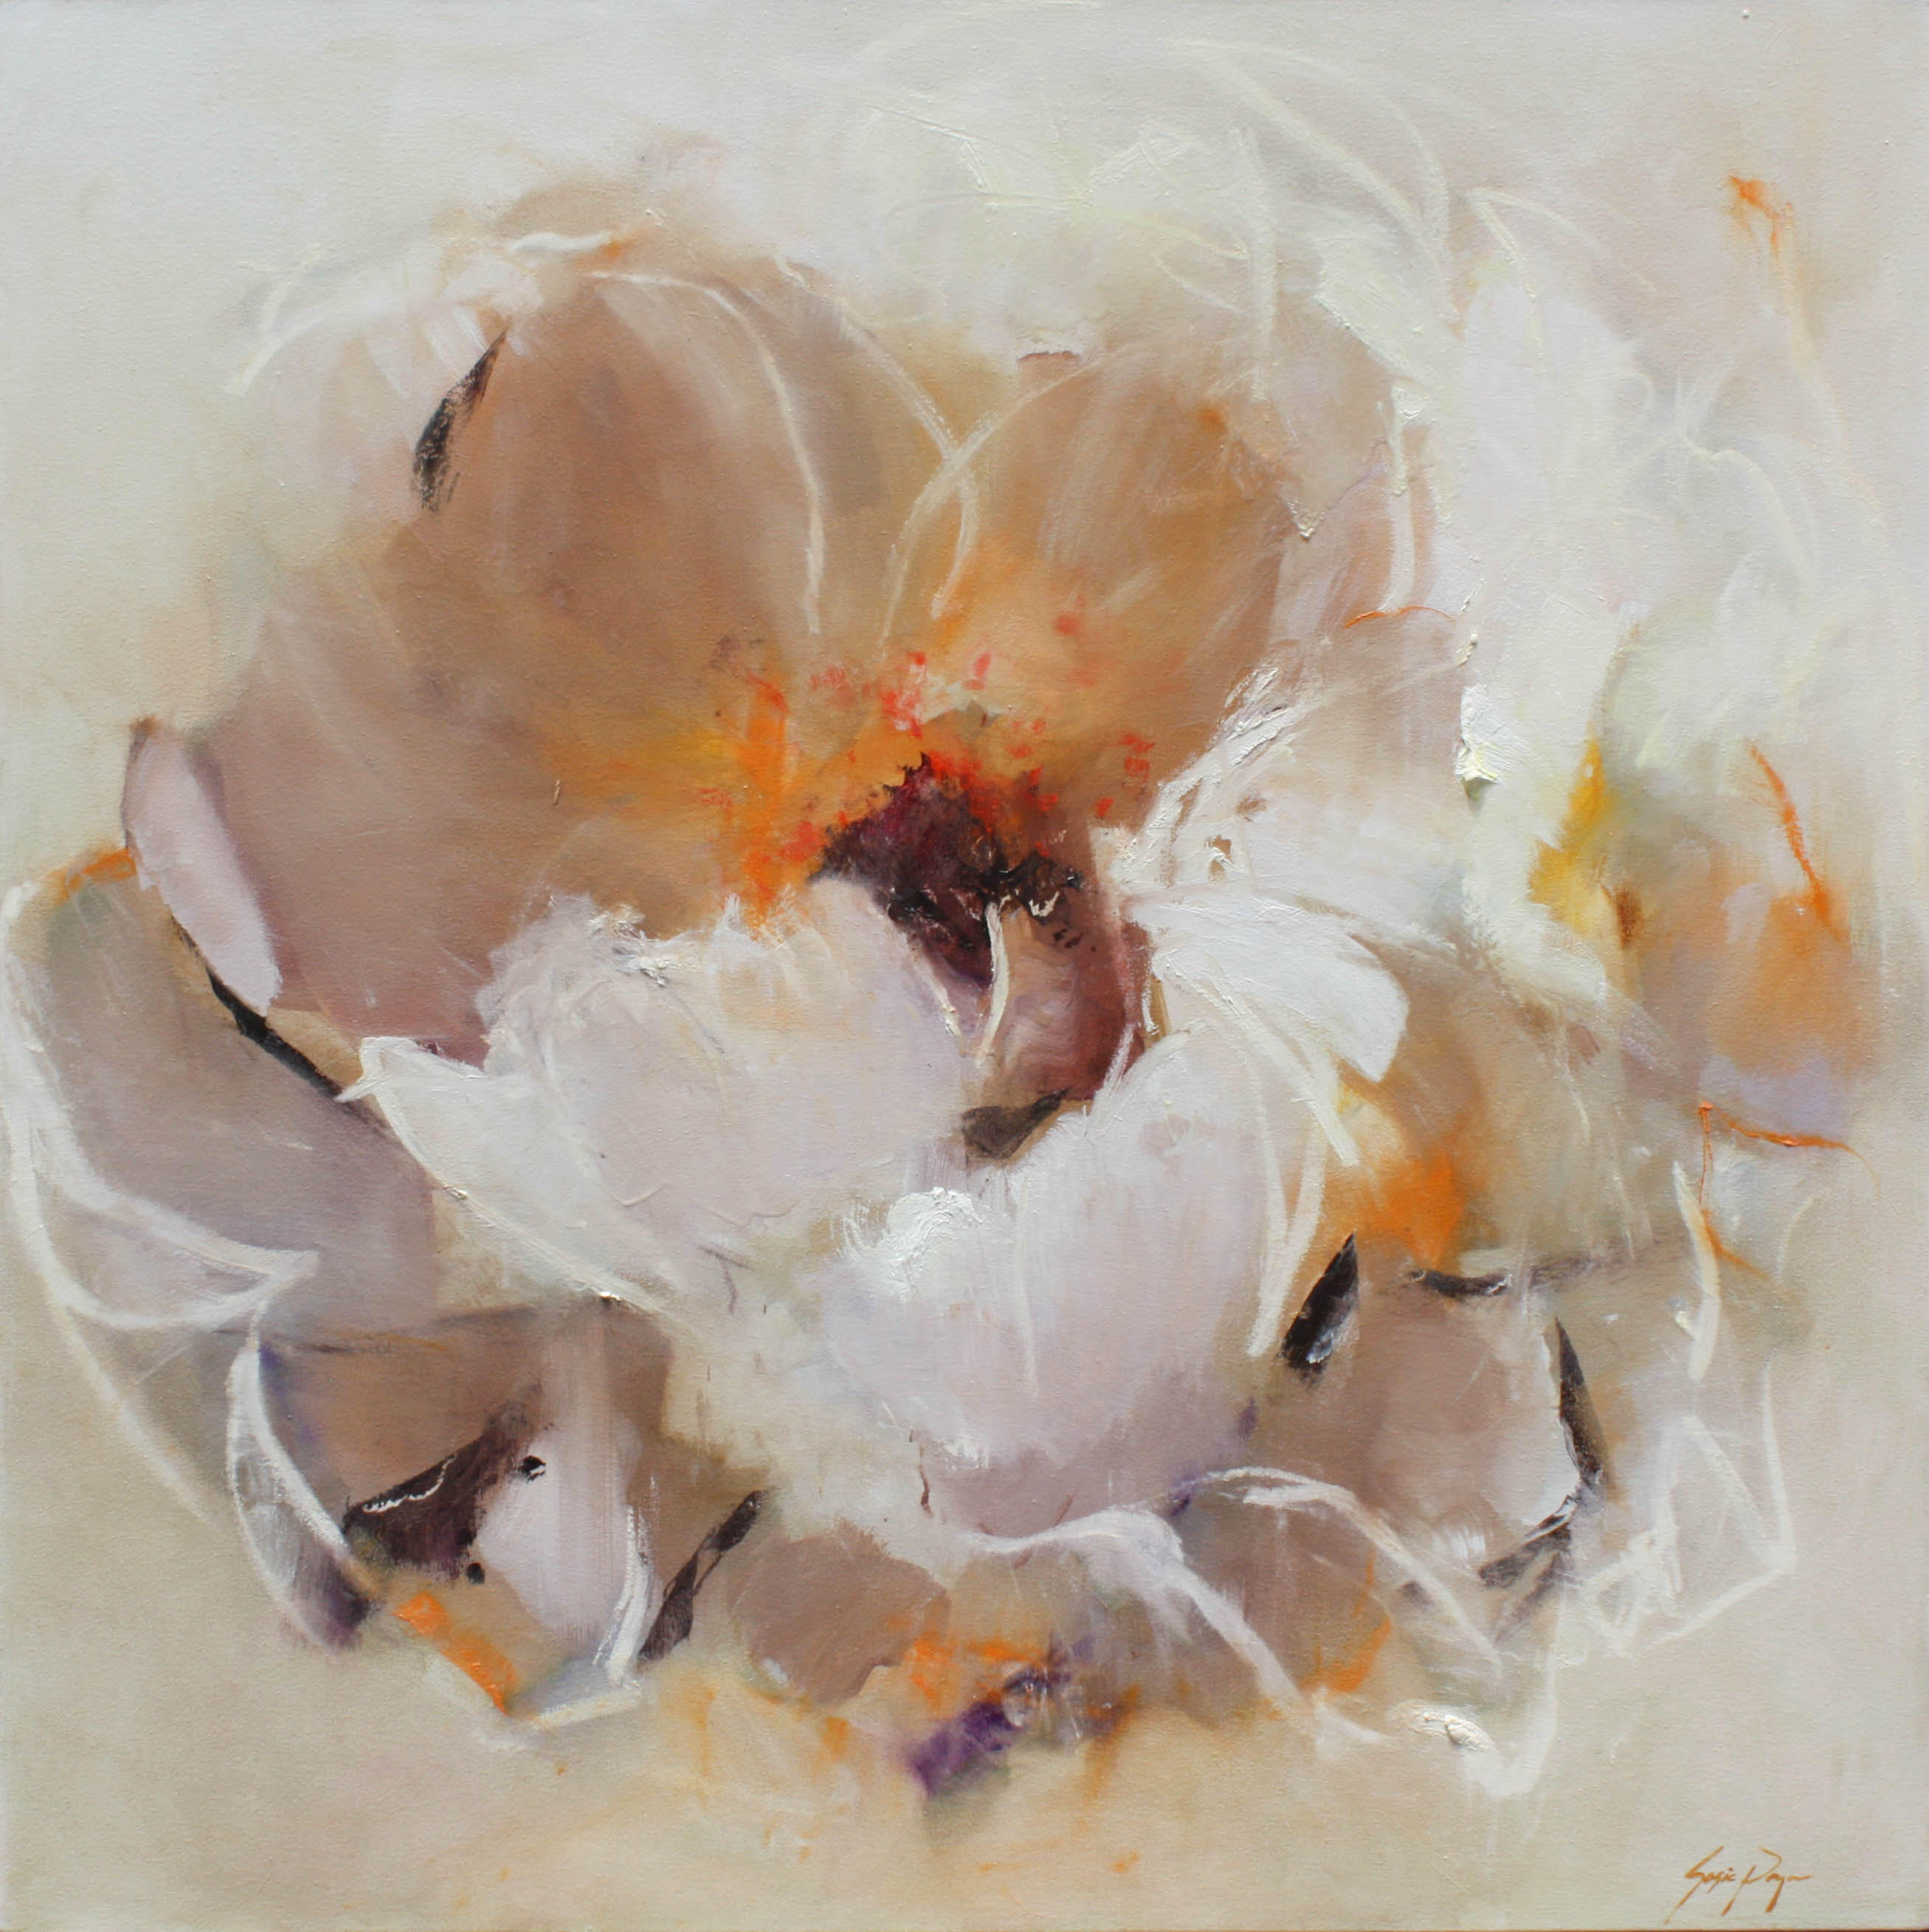 """48 x 48 oil painting by artist Susie Pryor titled """"Possibilities"""""""